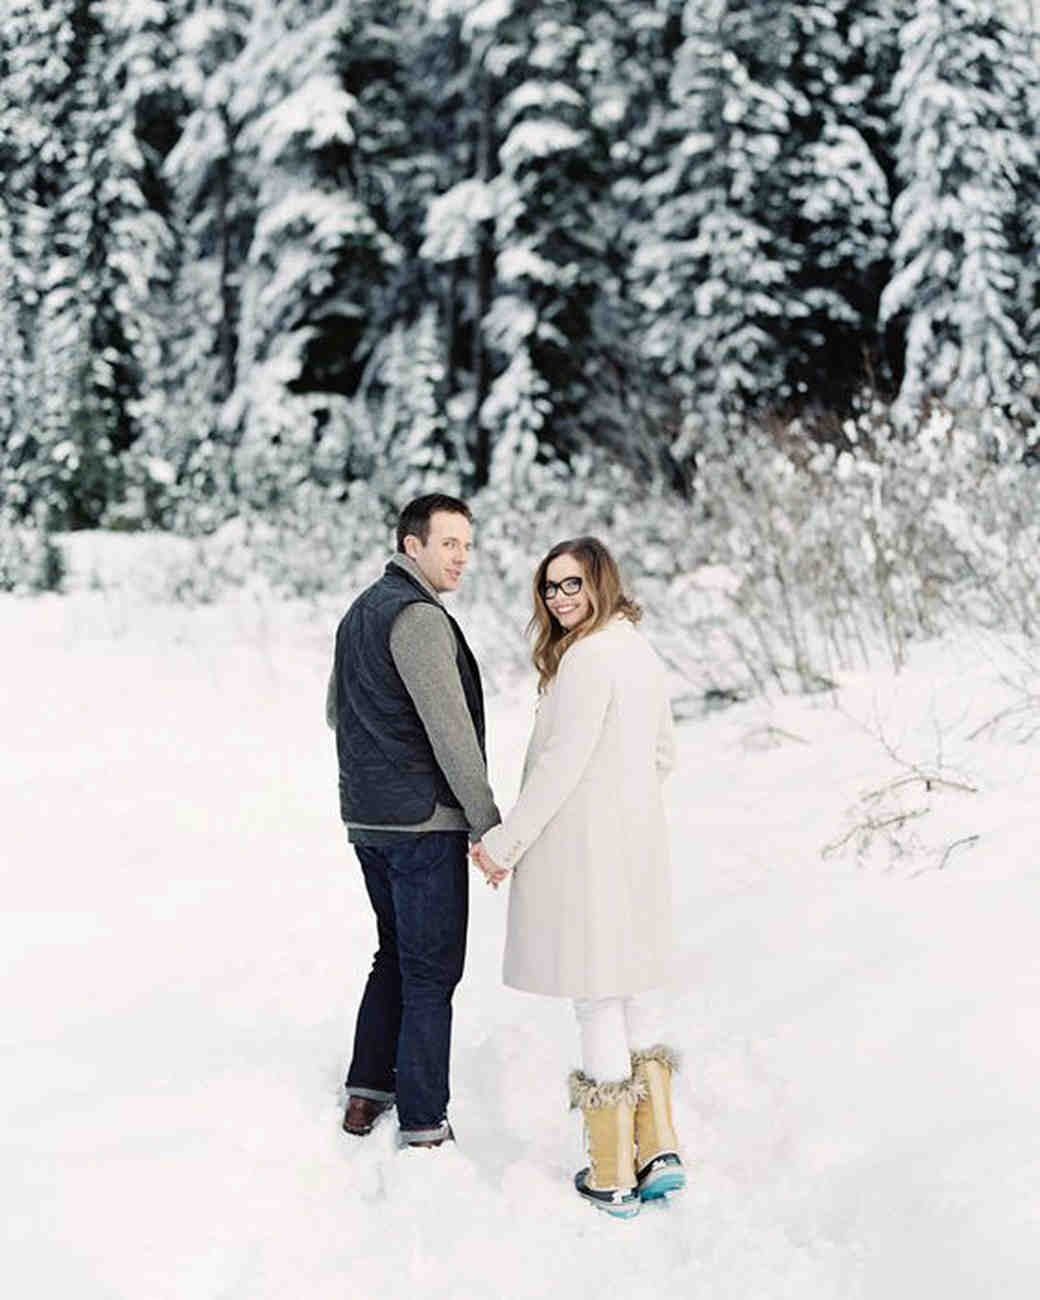 25 Snowy Engagement Photos To Inspire Your Own Martha Stewart Weddings